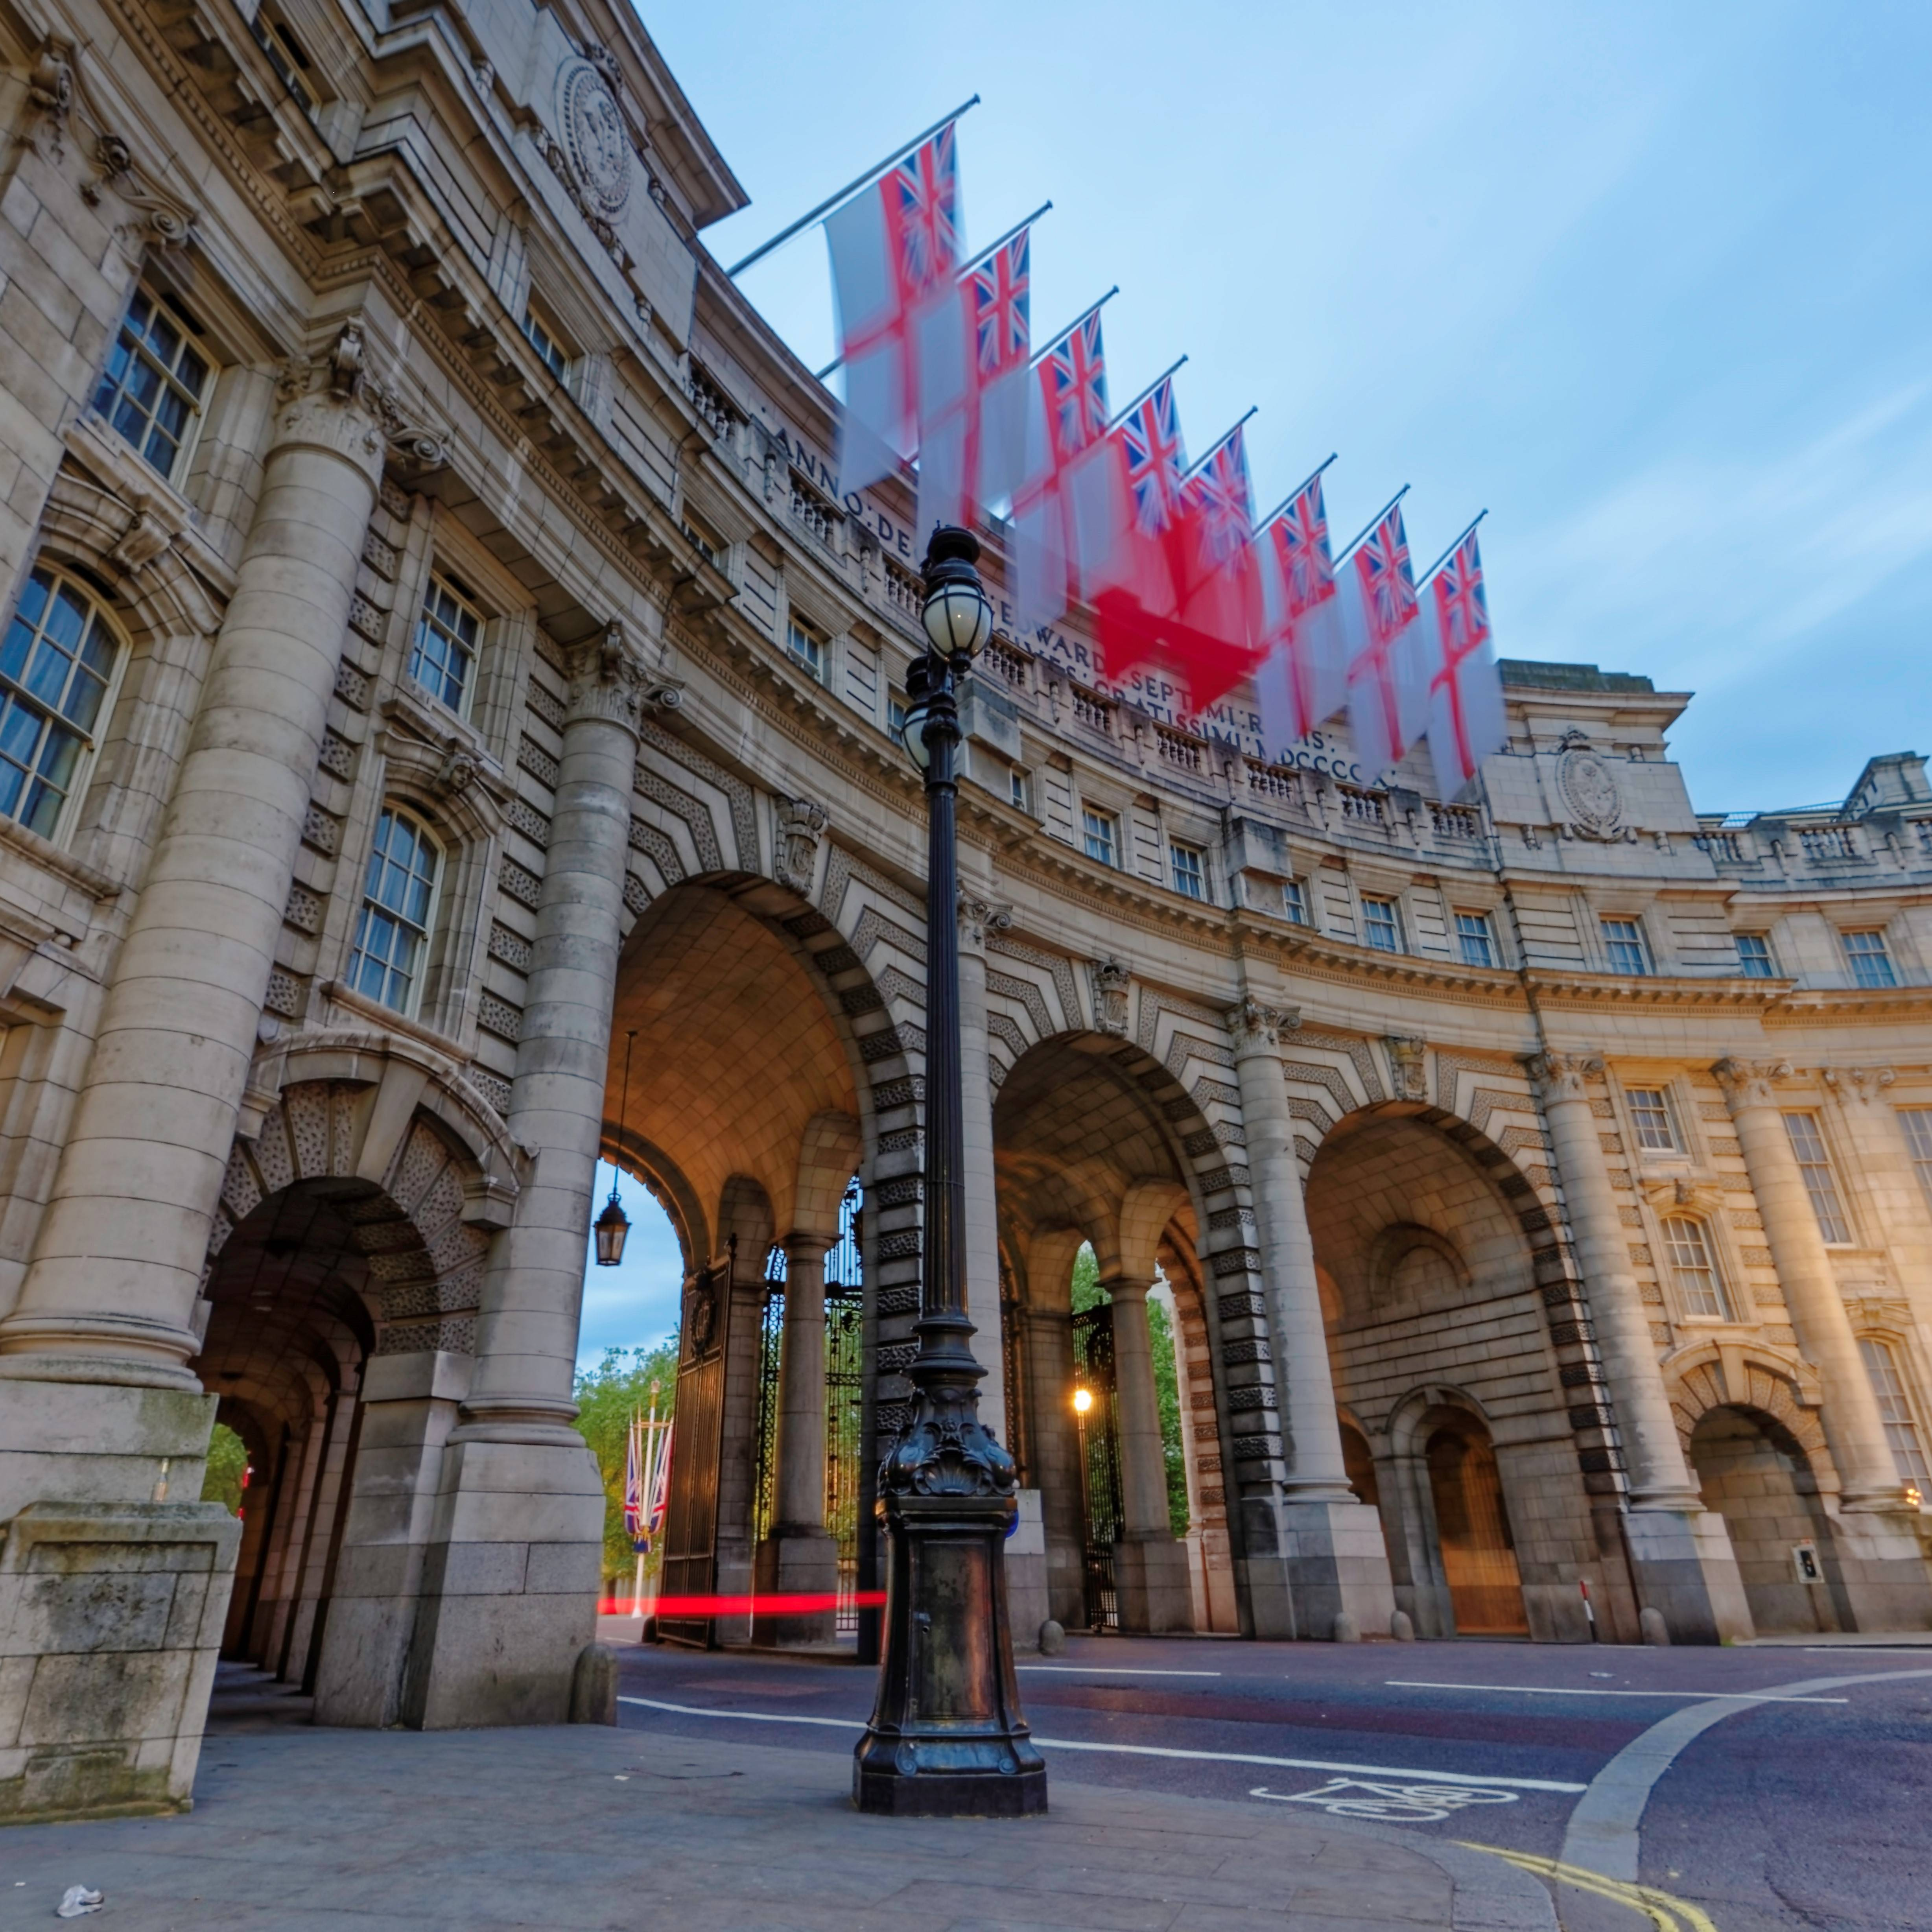 UK public sector property programme to 'deliver billions to public purse'